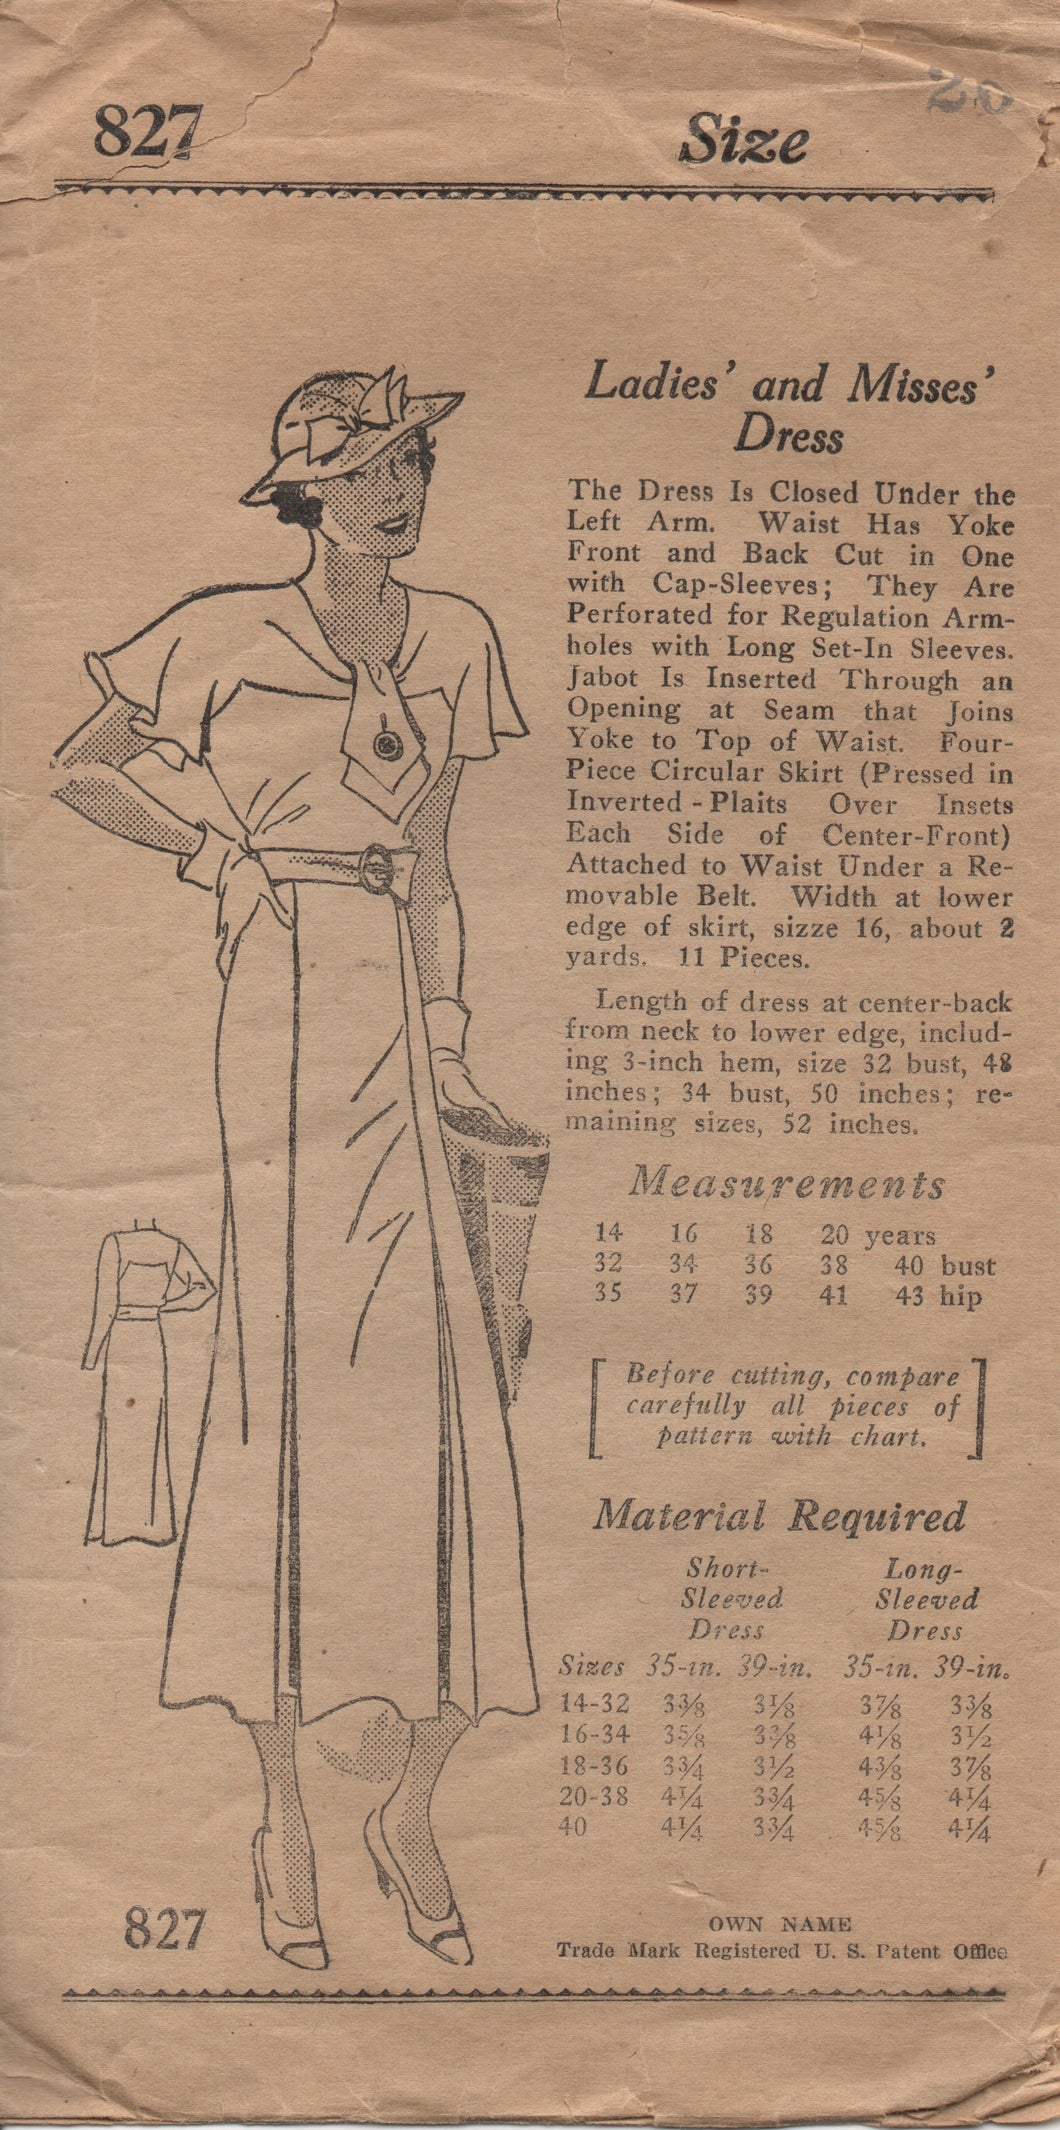 1930's Mail Order One Piece Dress with Yoke into draped cape sleeves - Bust 38